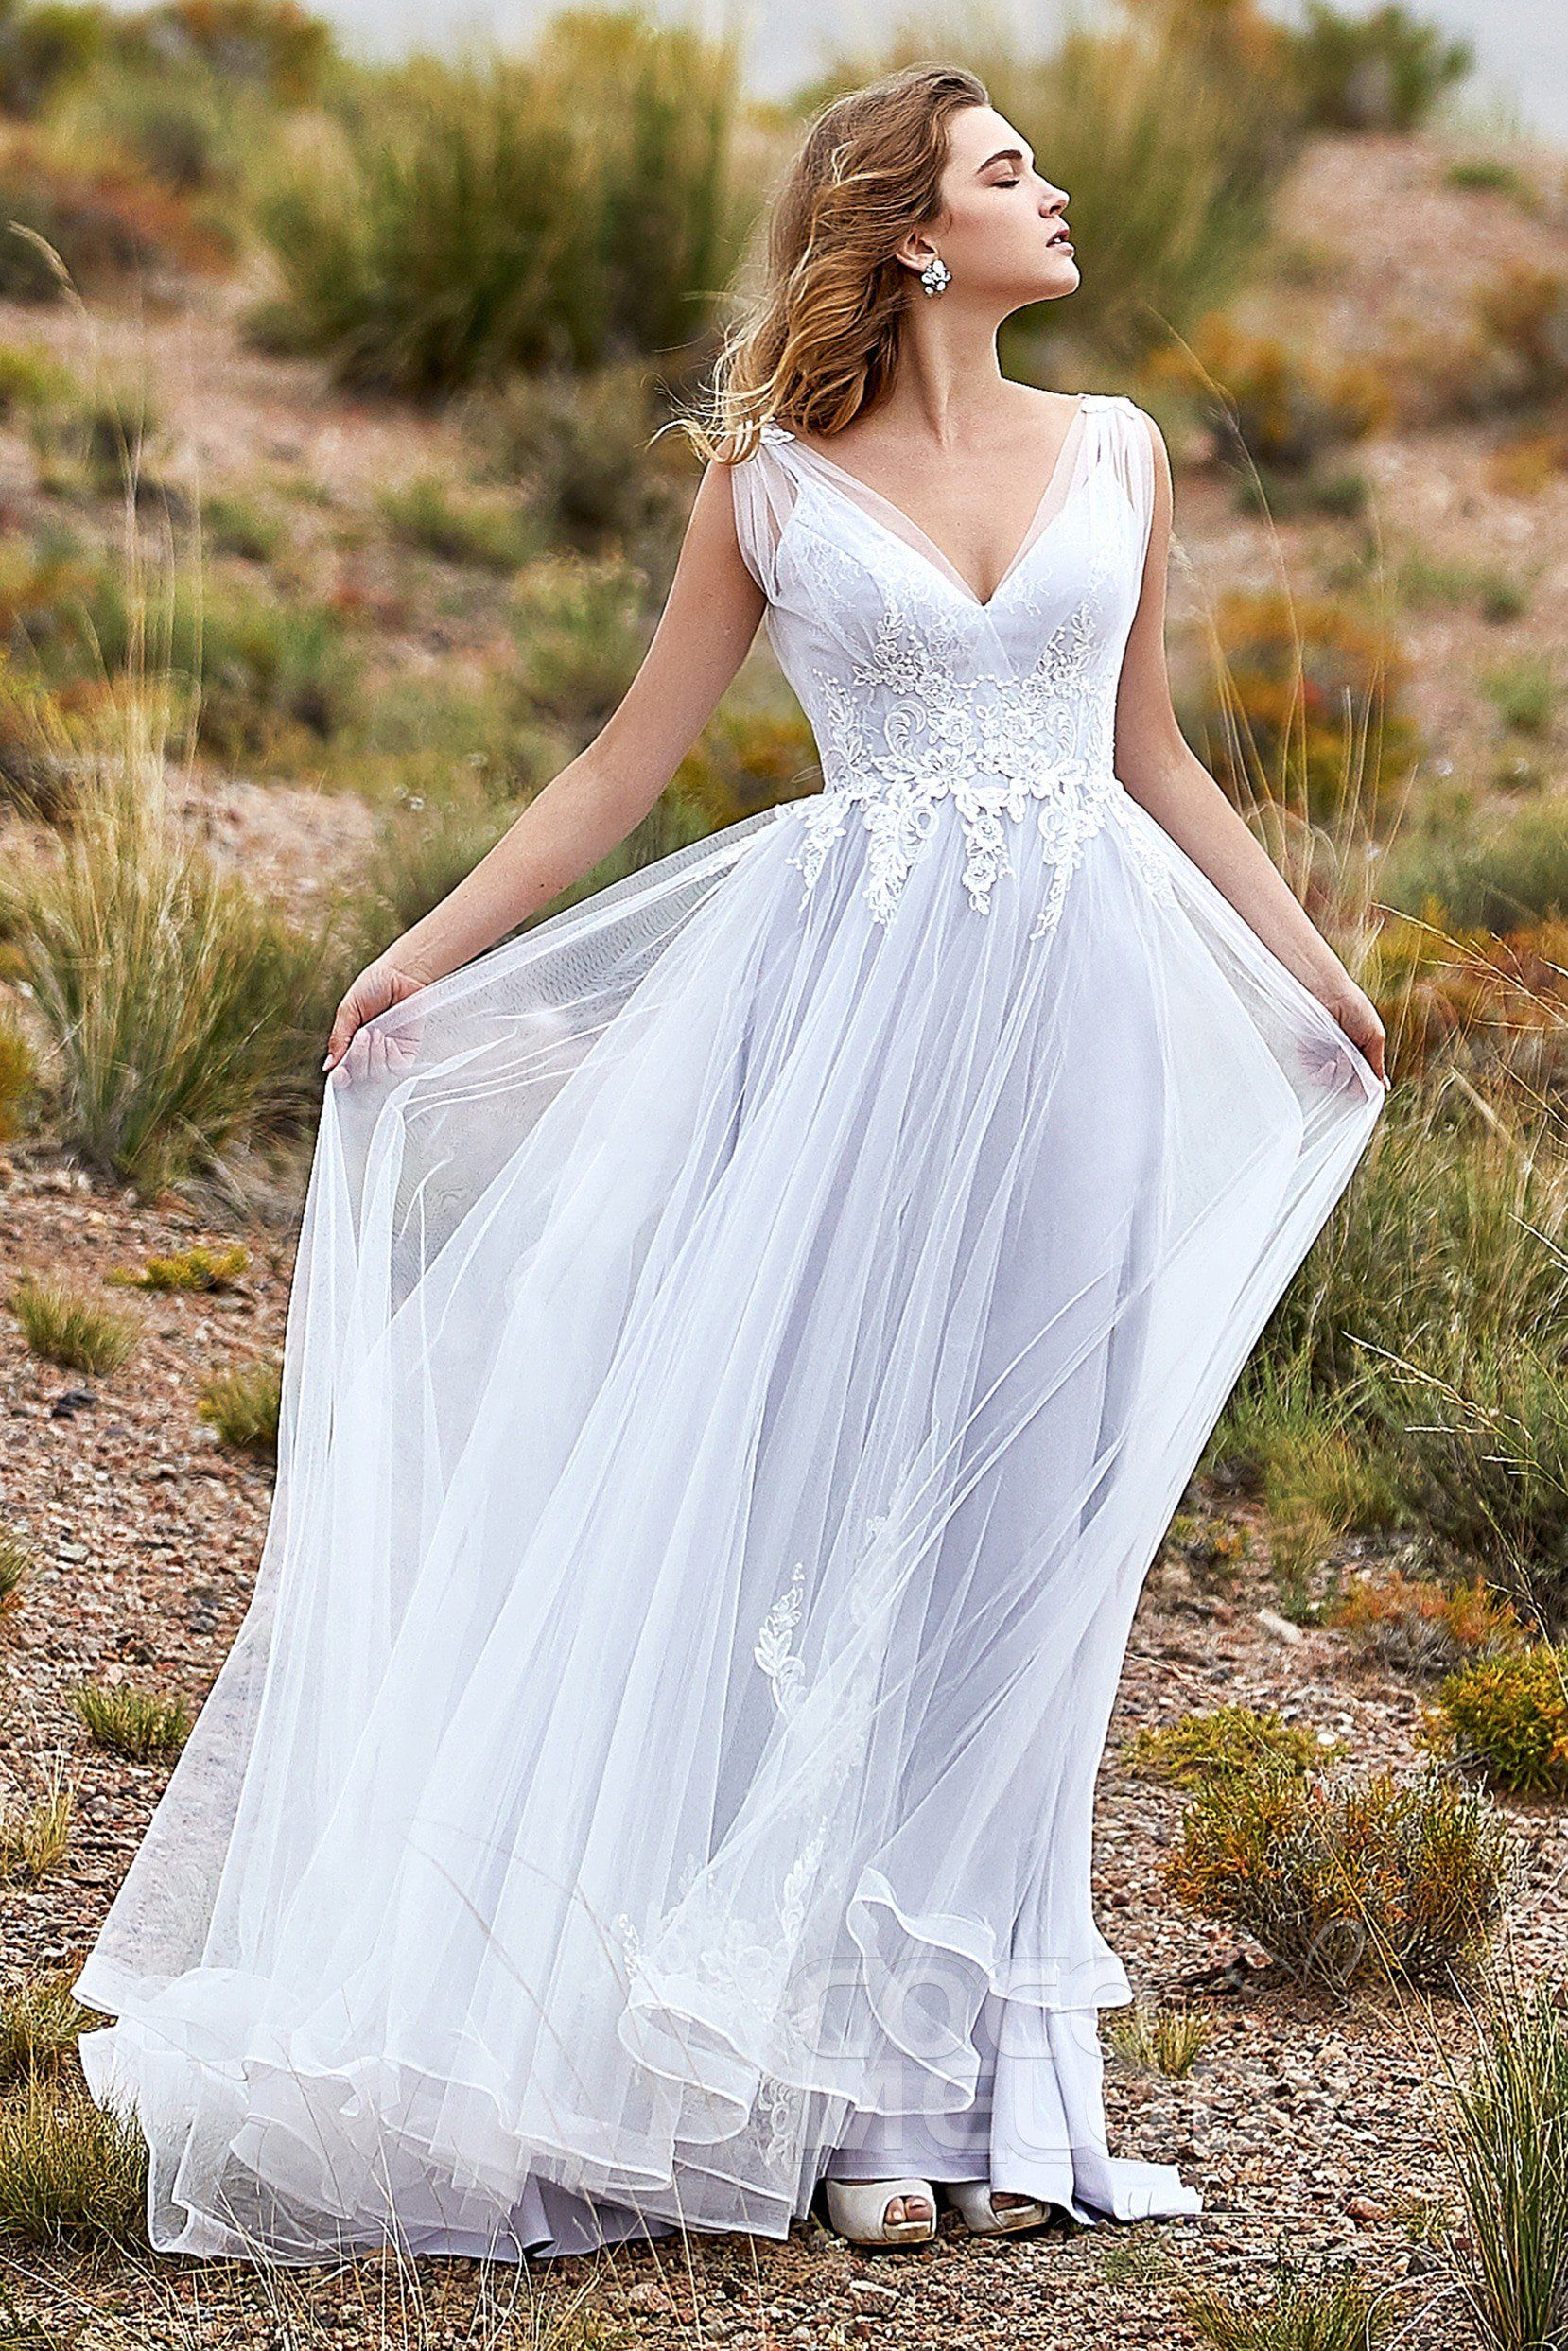 c0aa3aa658e A-Line Sweep-Brush Train Tulle Wedding Dress LD5845 #cocomelody  #alineweddingdress #tullebridalgown #2019newcollection